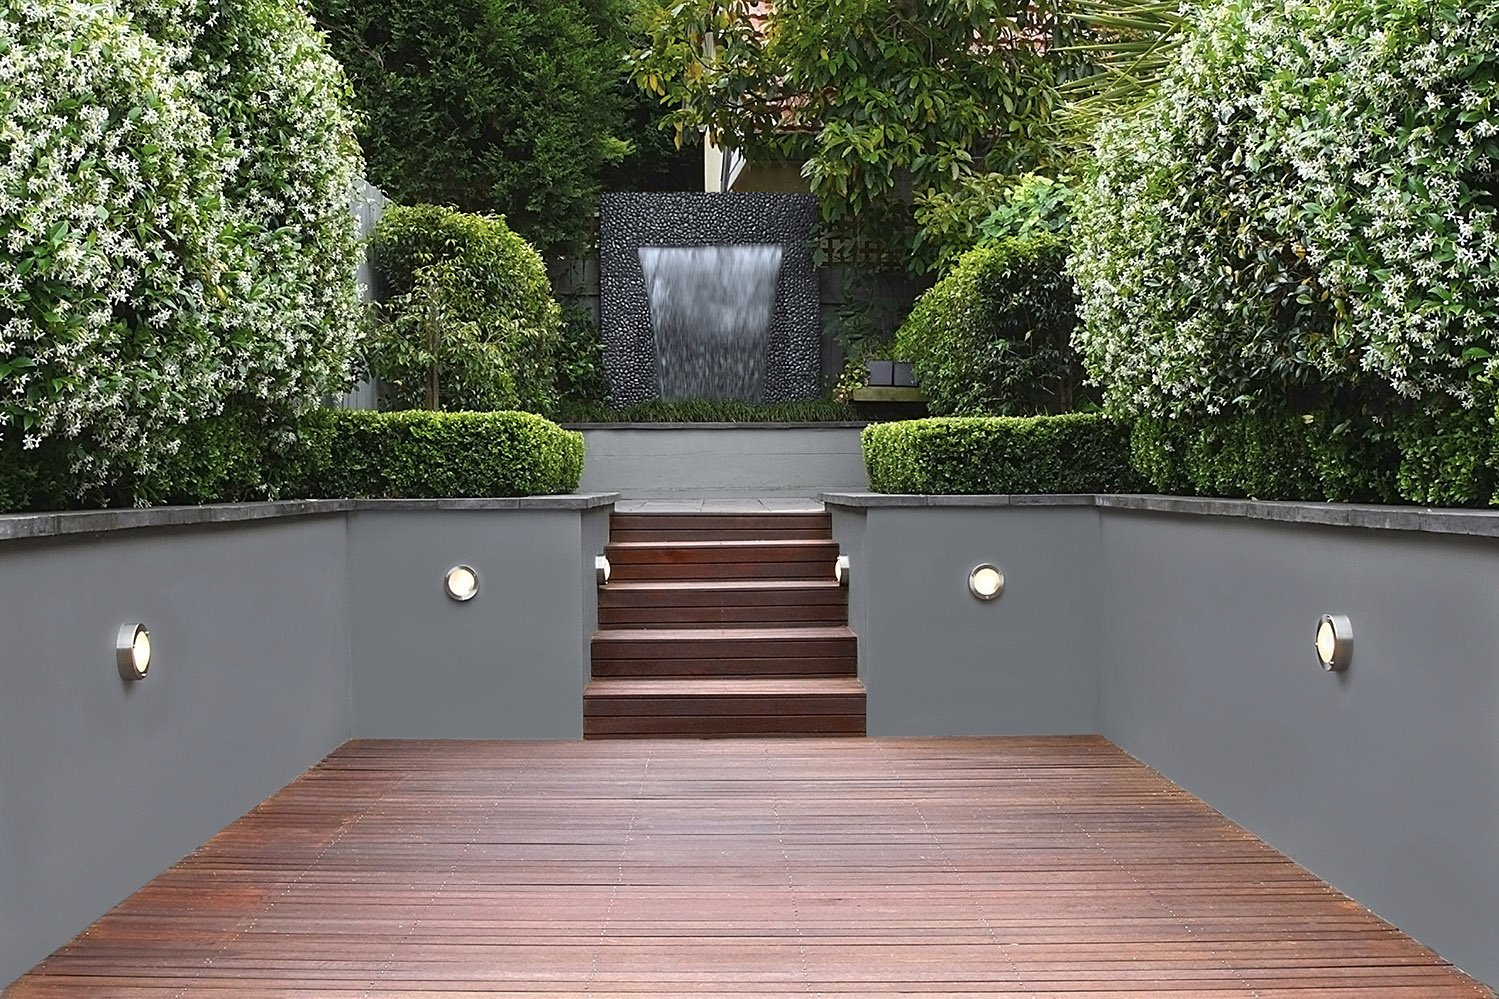 Luxury garden with waterfall, lights and wooden stairs